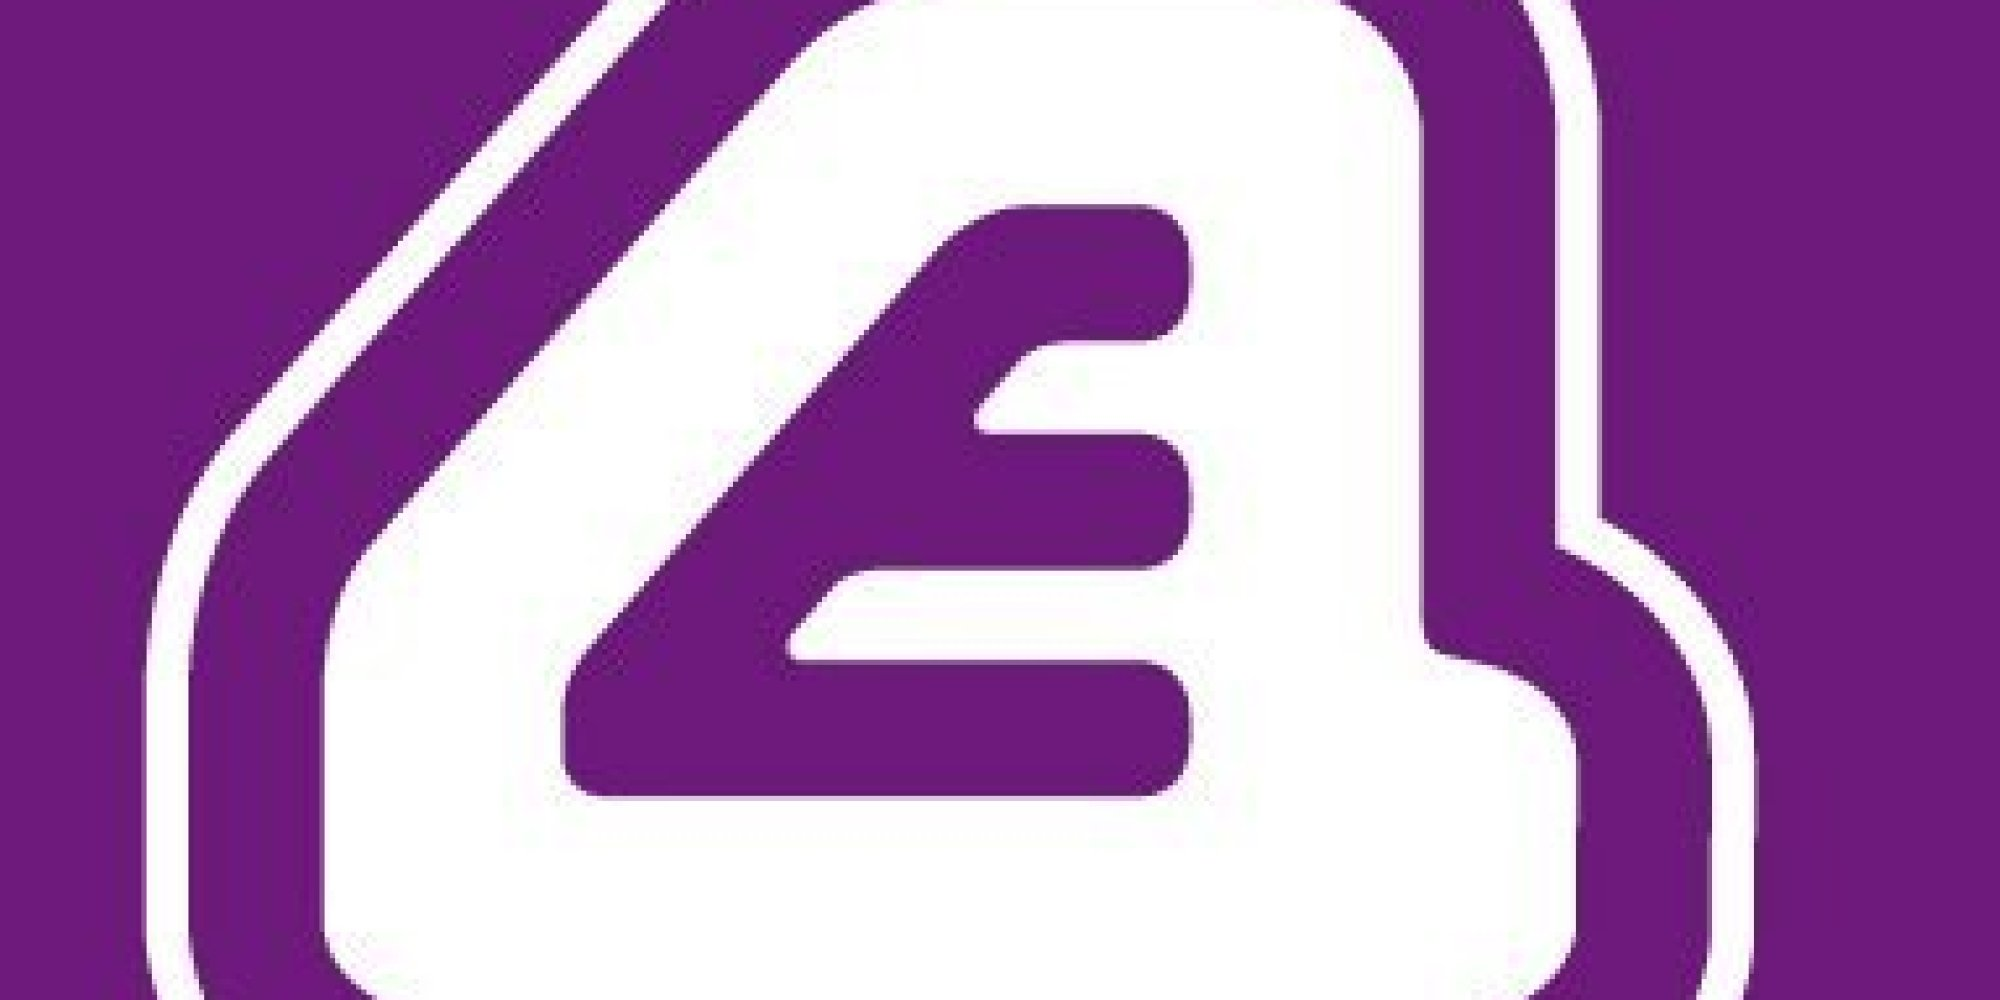 E4 To Be Switched Off For Election Day On 7 May, To Encourage ...